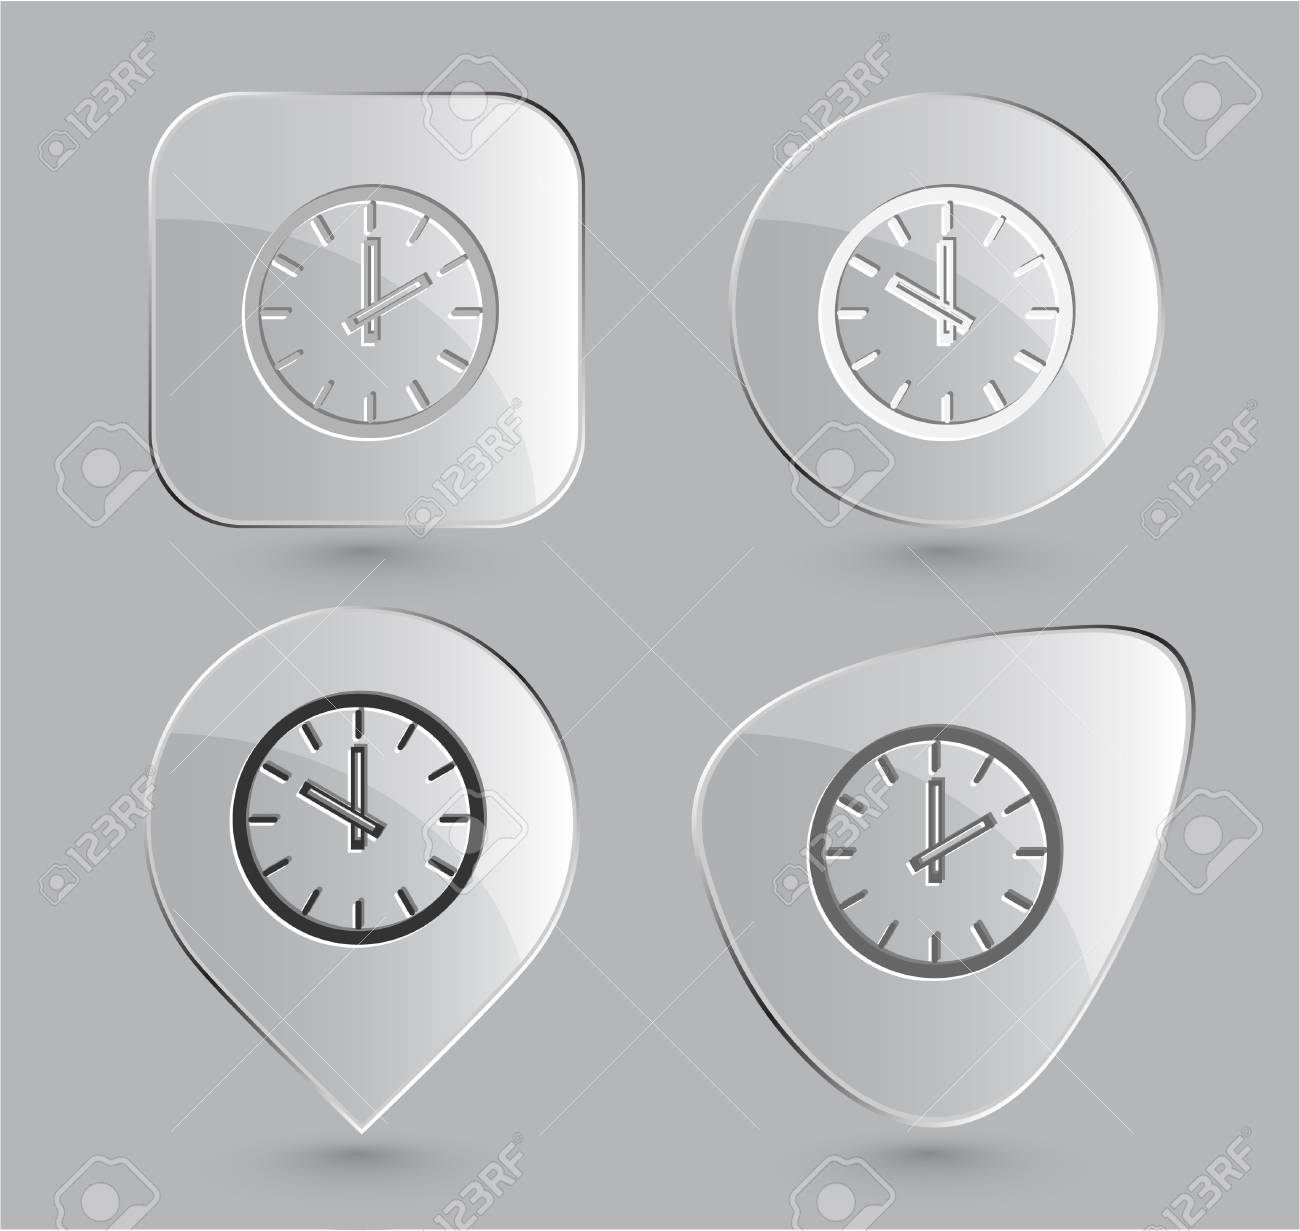 Clock. Glass buttons. Vector illustration. Stock Illustration - 12920511